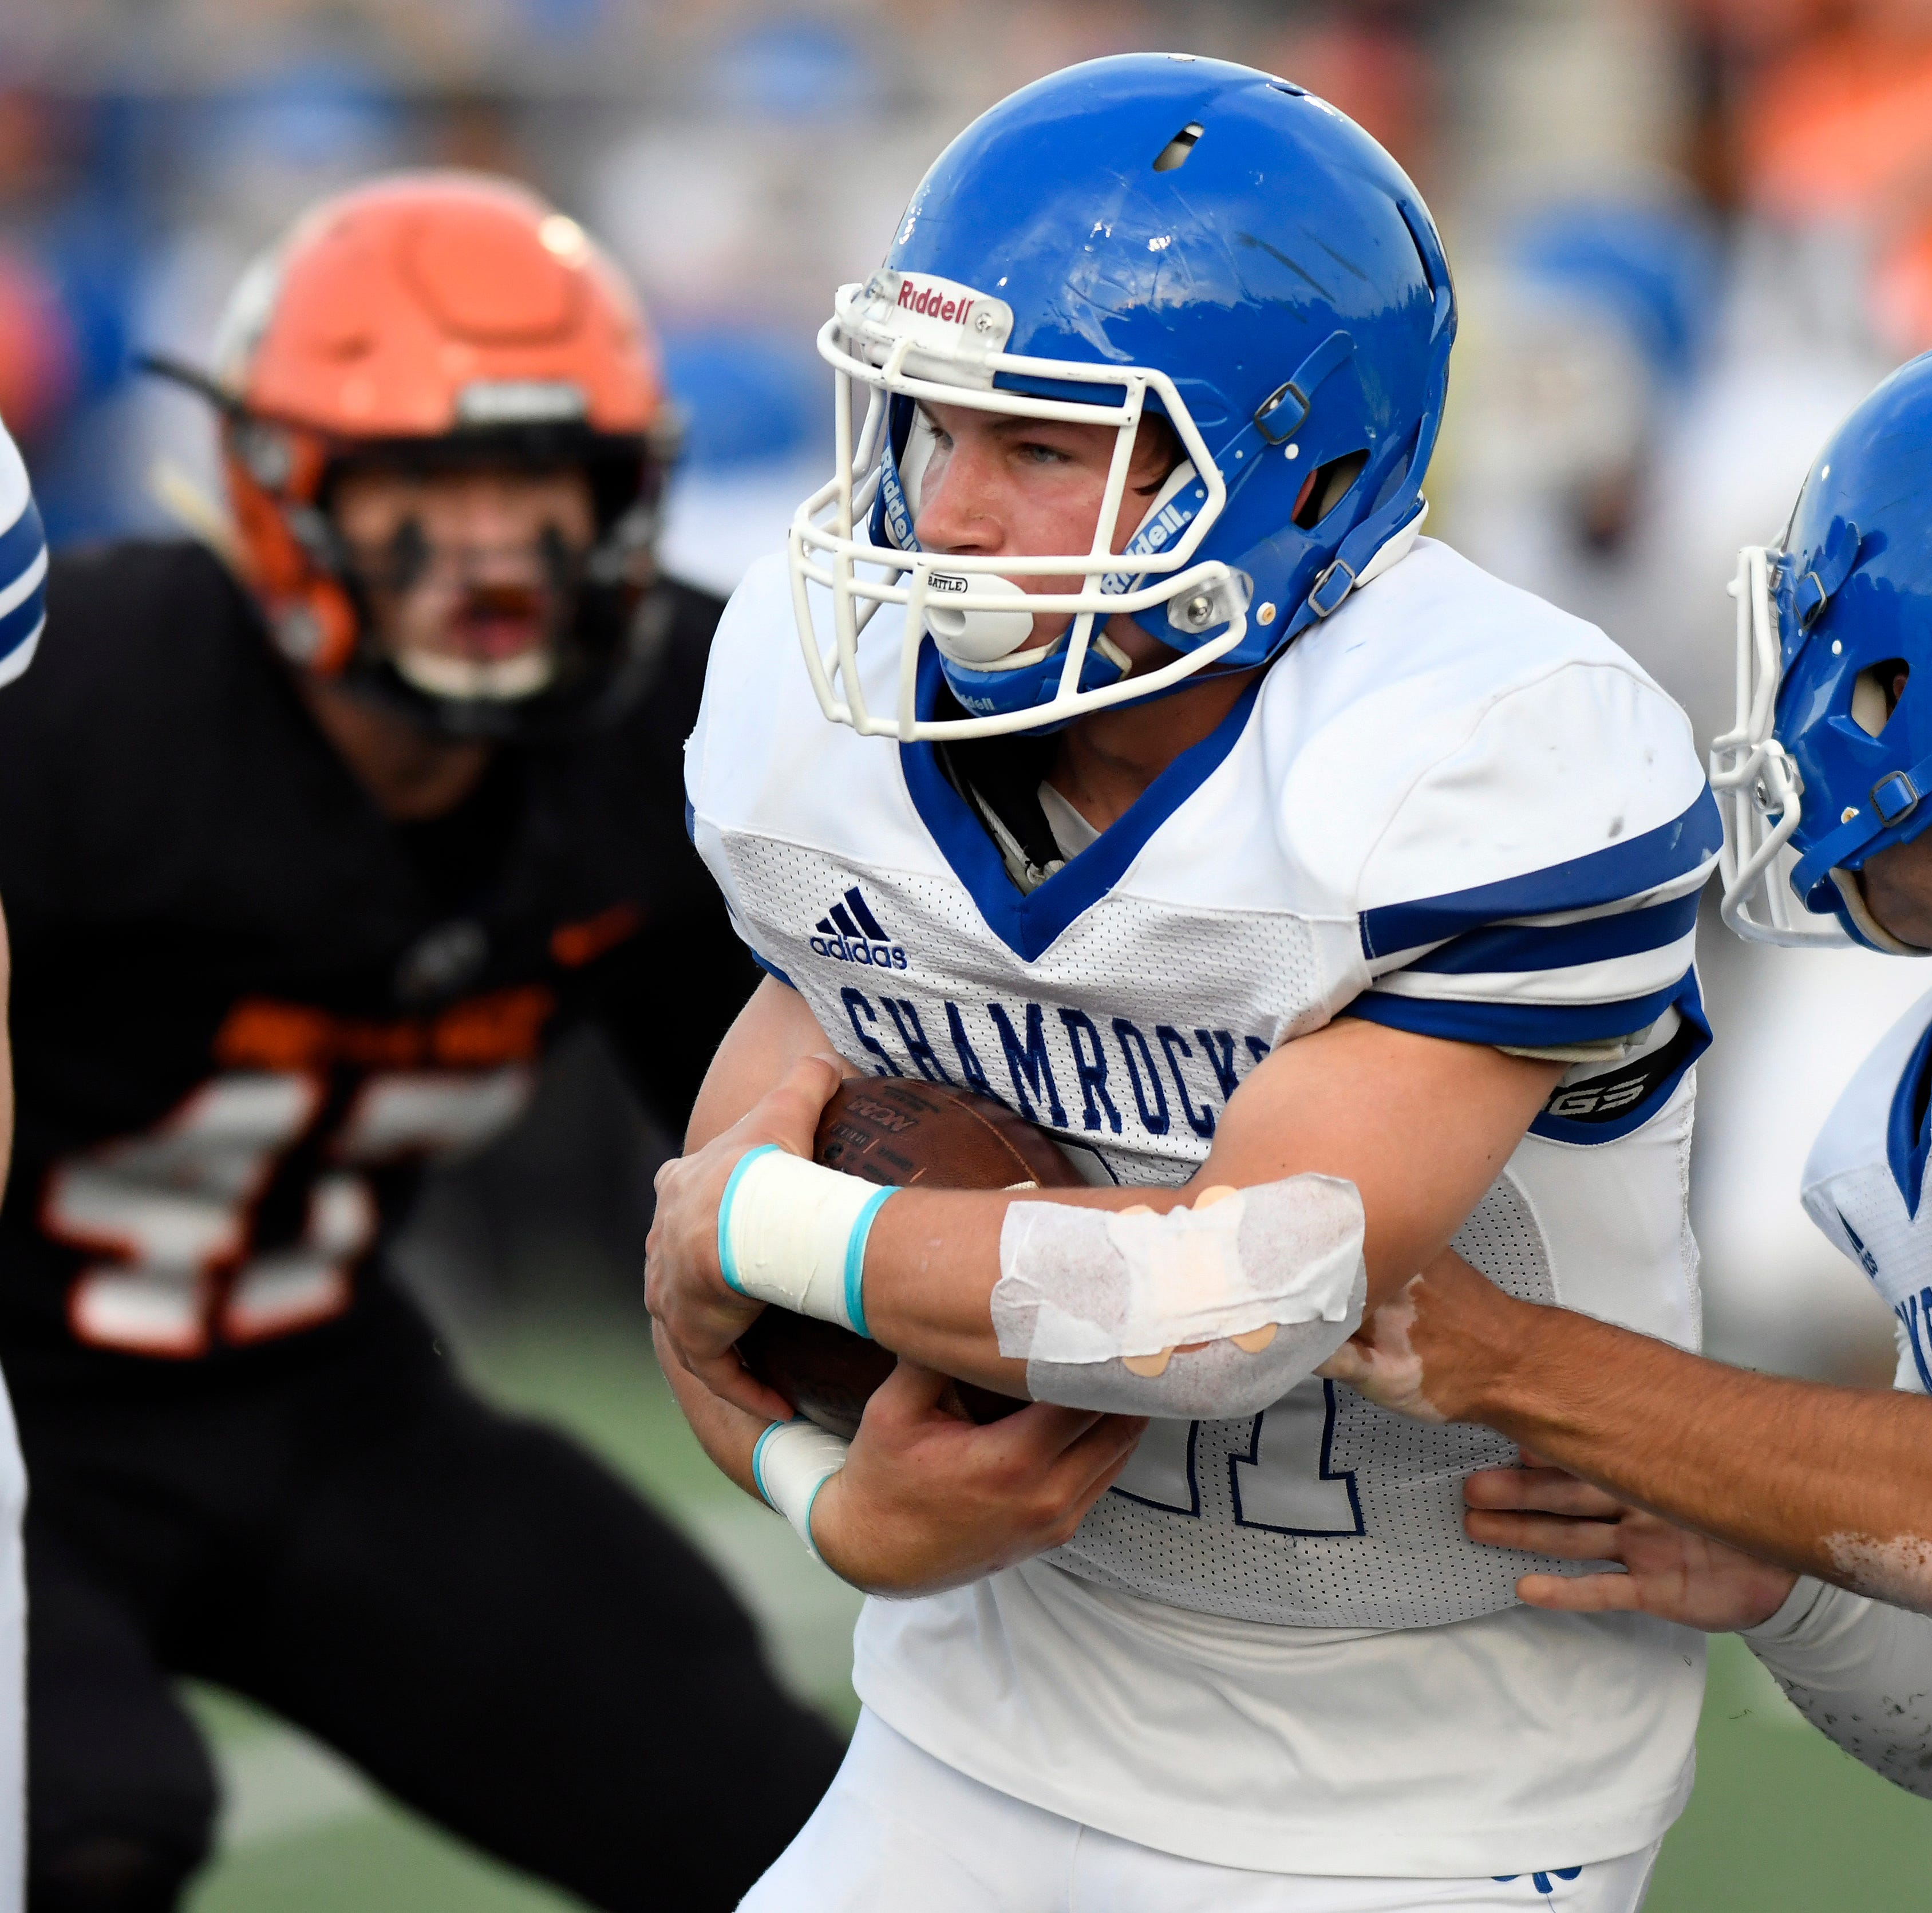 Detroit Catholic Central running back Keegan Koehler (21) rushes for yardage against Birmingham Brother Rice in the first quarter of Saturday's game.